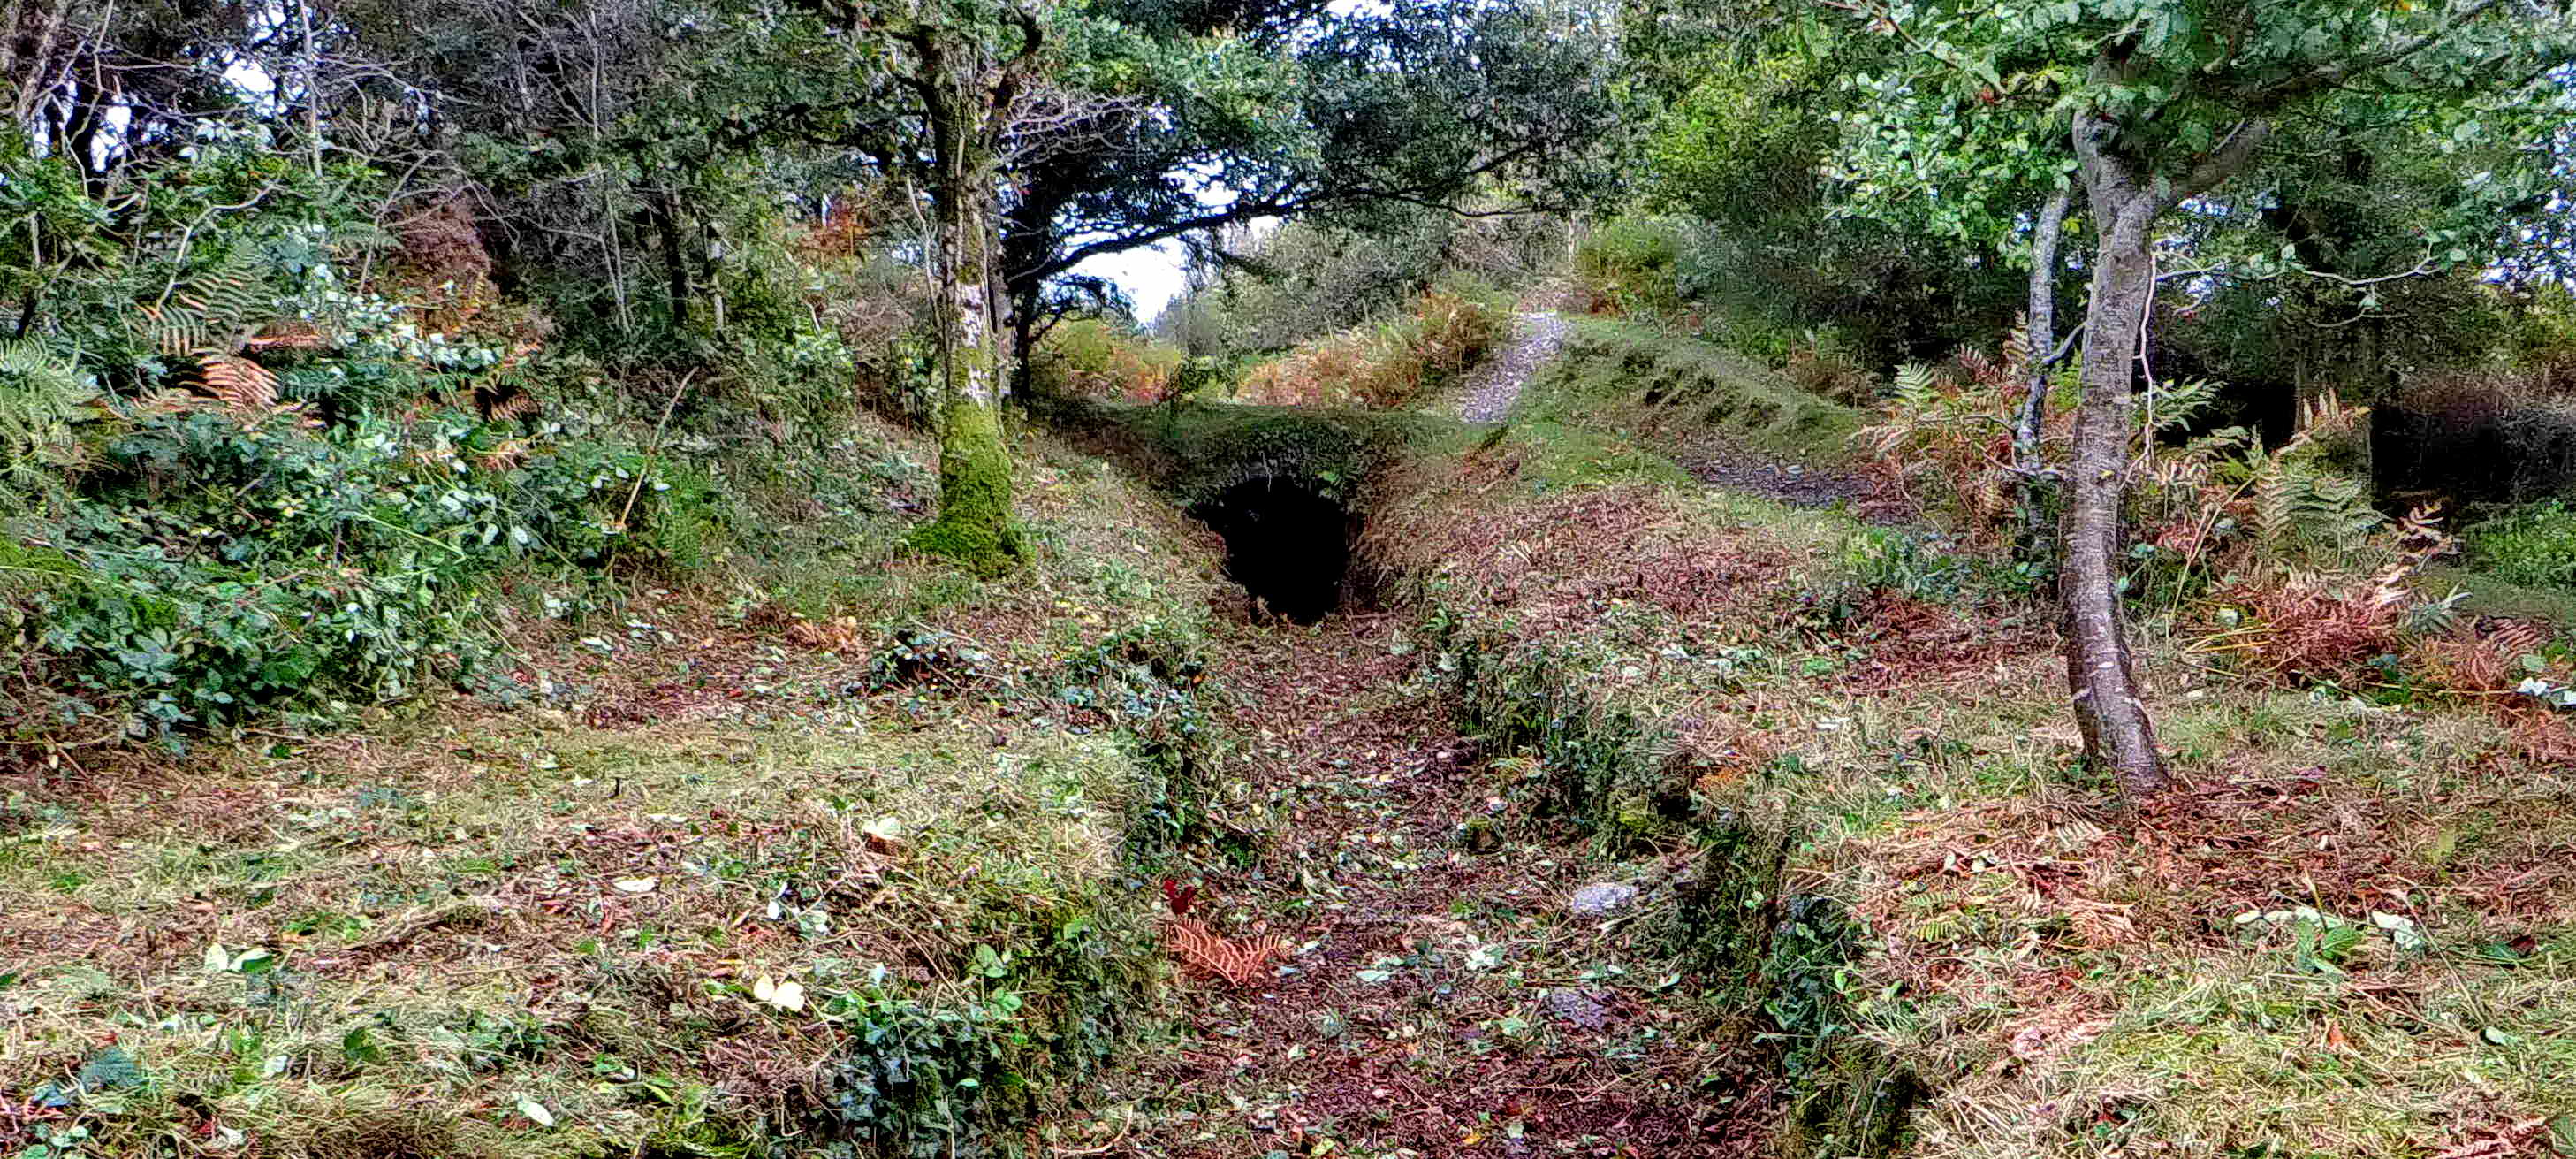 Overview of the tunnel entrance.